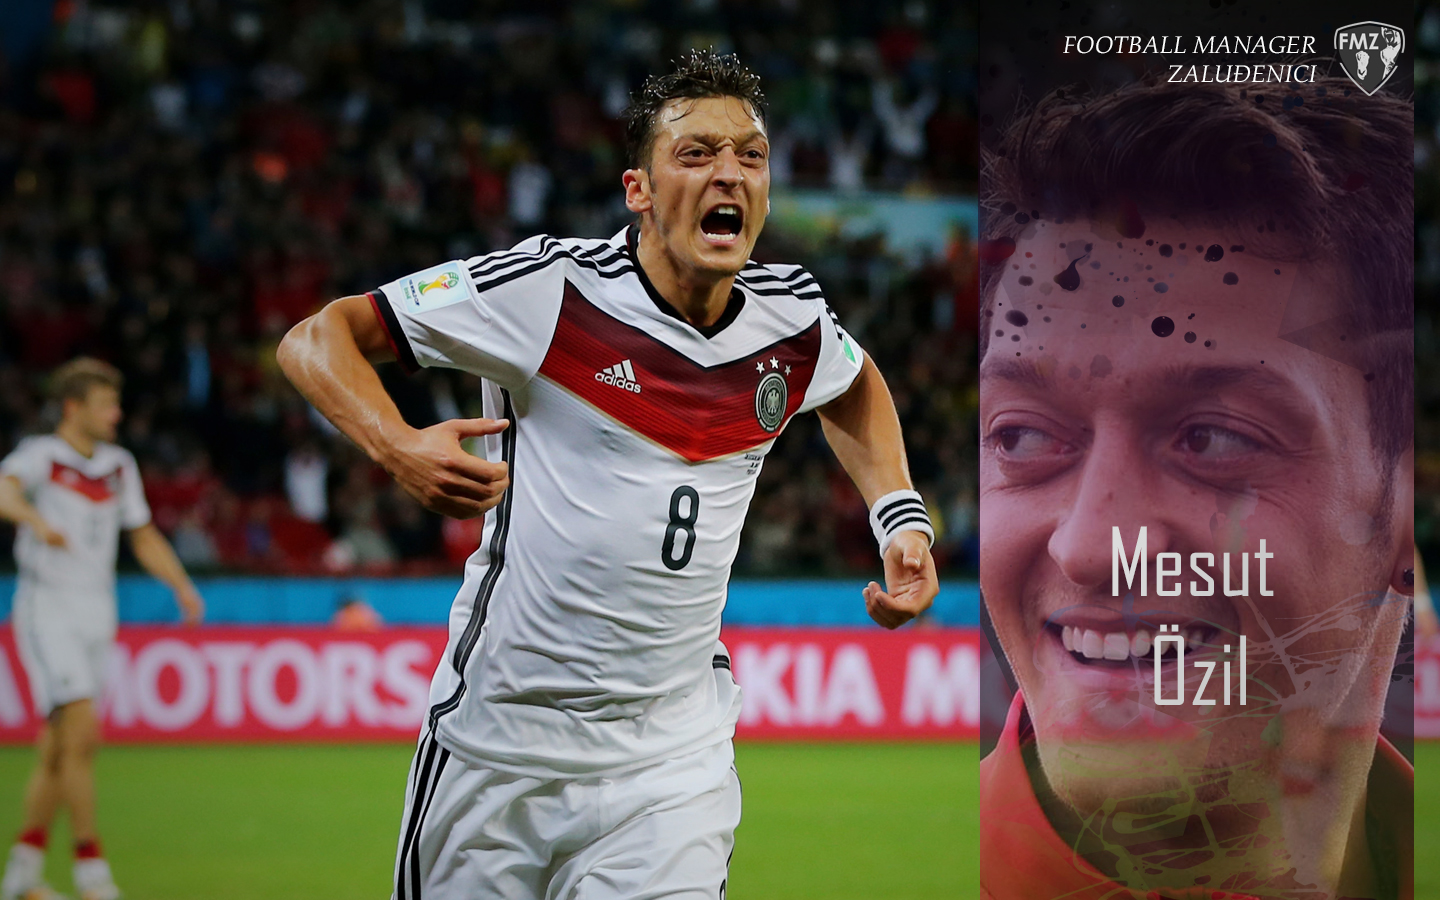 Mesut Ozil Football Wallpaper Backgrounds And Picture